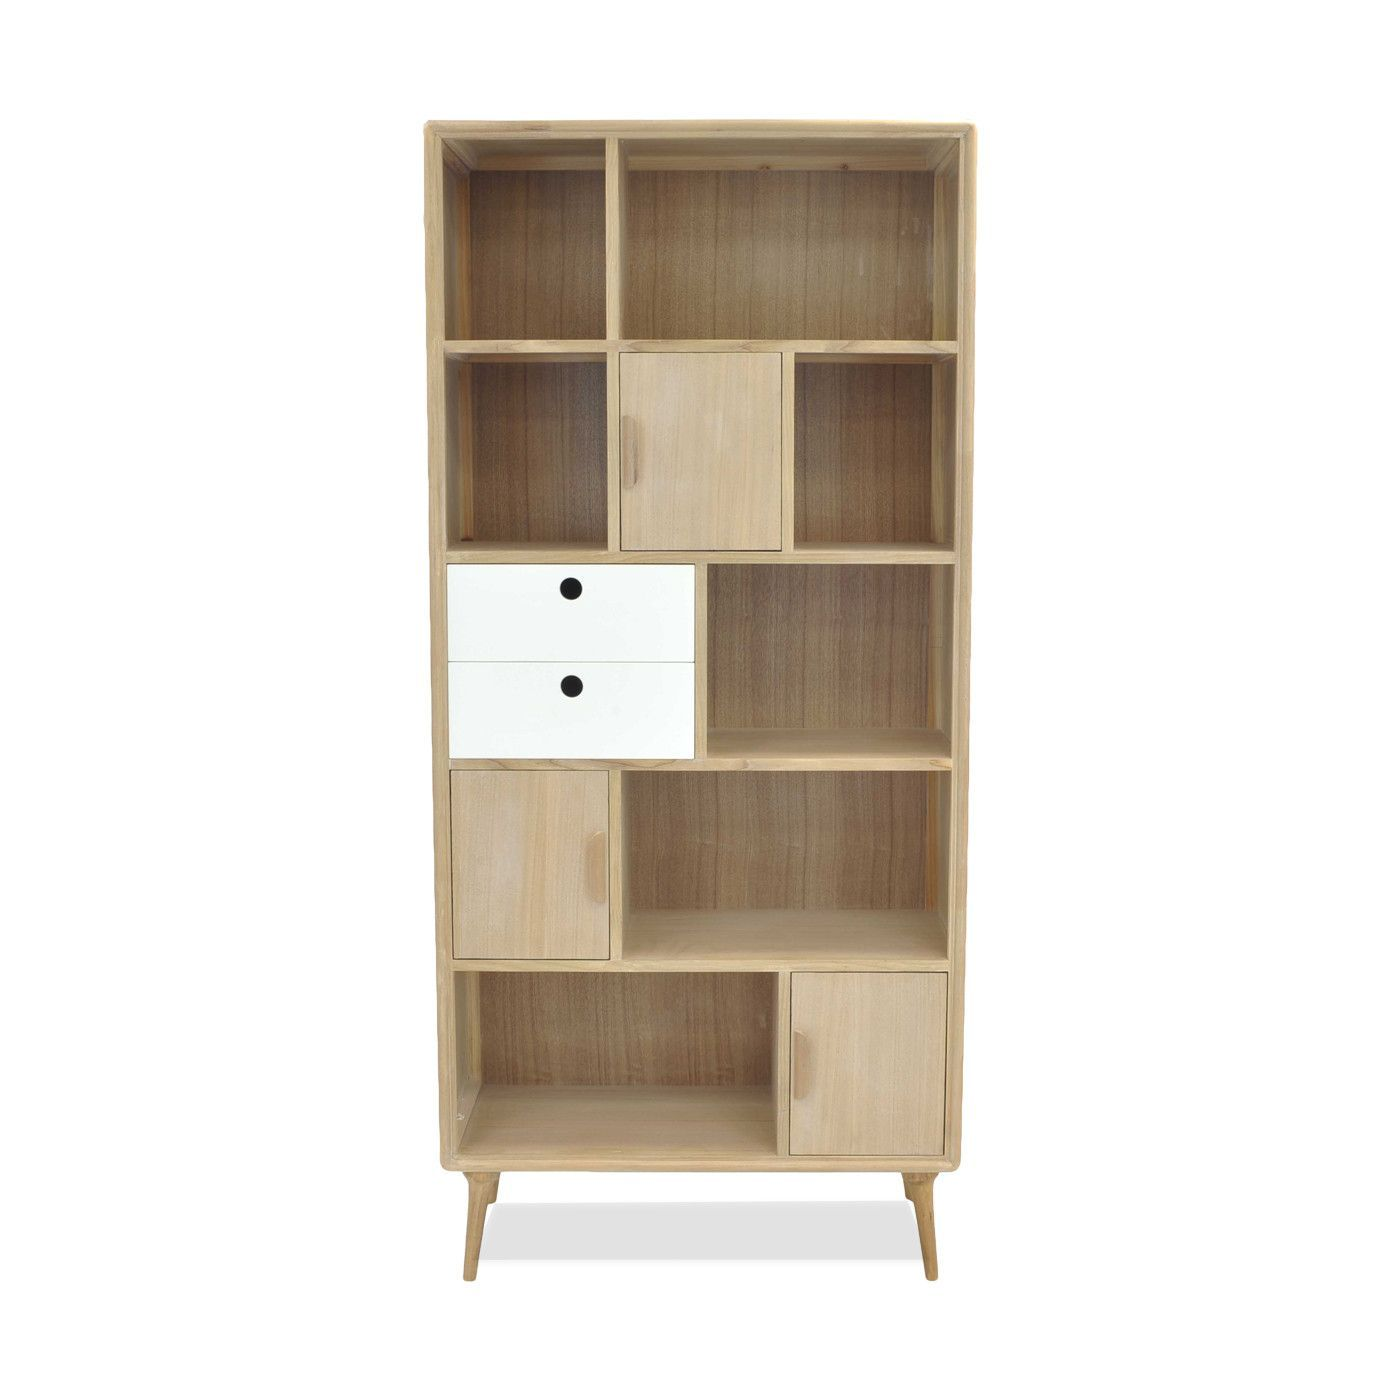 Mabel bookcase whitenatural products wood veneer and spaces